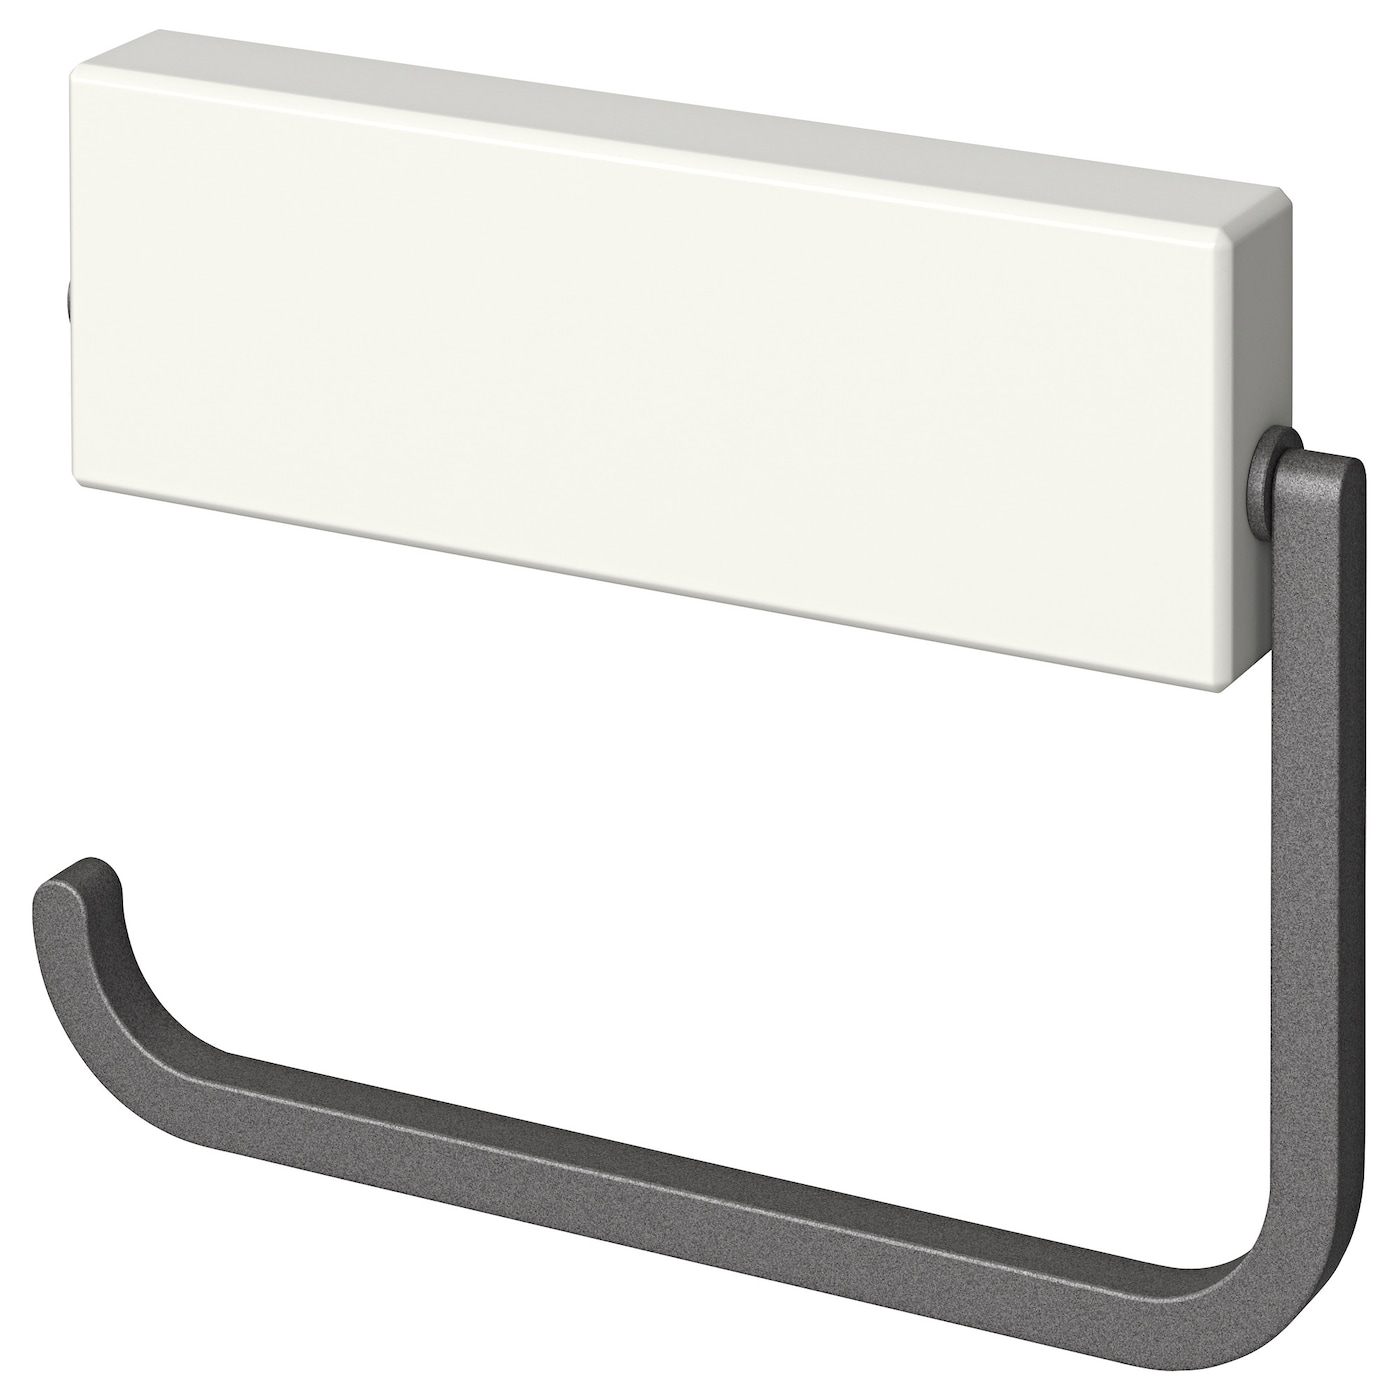 HJÄLMAREN Toilet roll holder White  IKEA -> Ikea Wandregal Hjälmaren